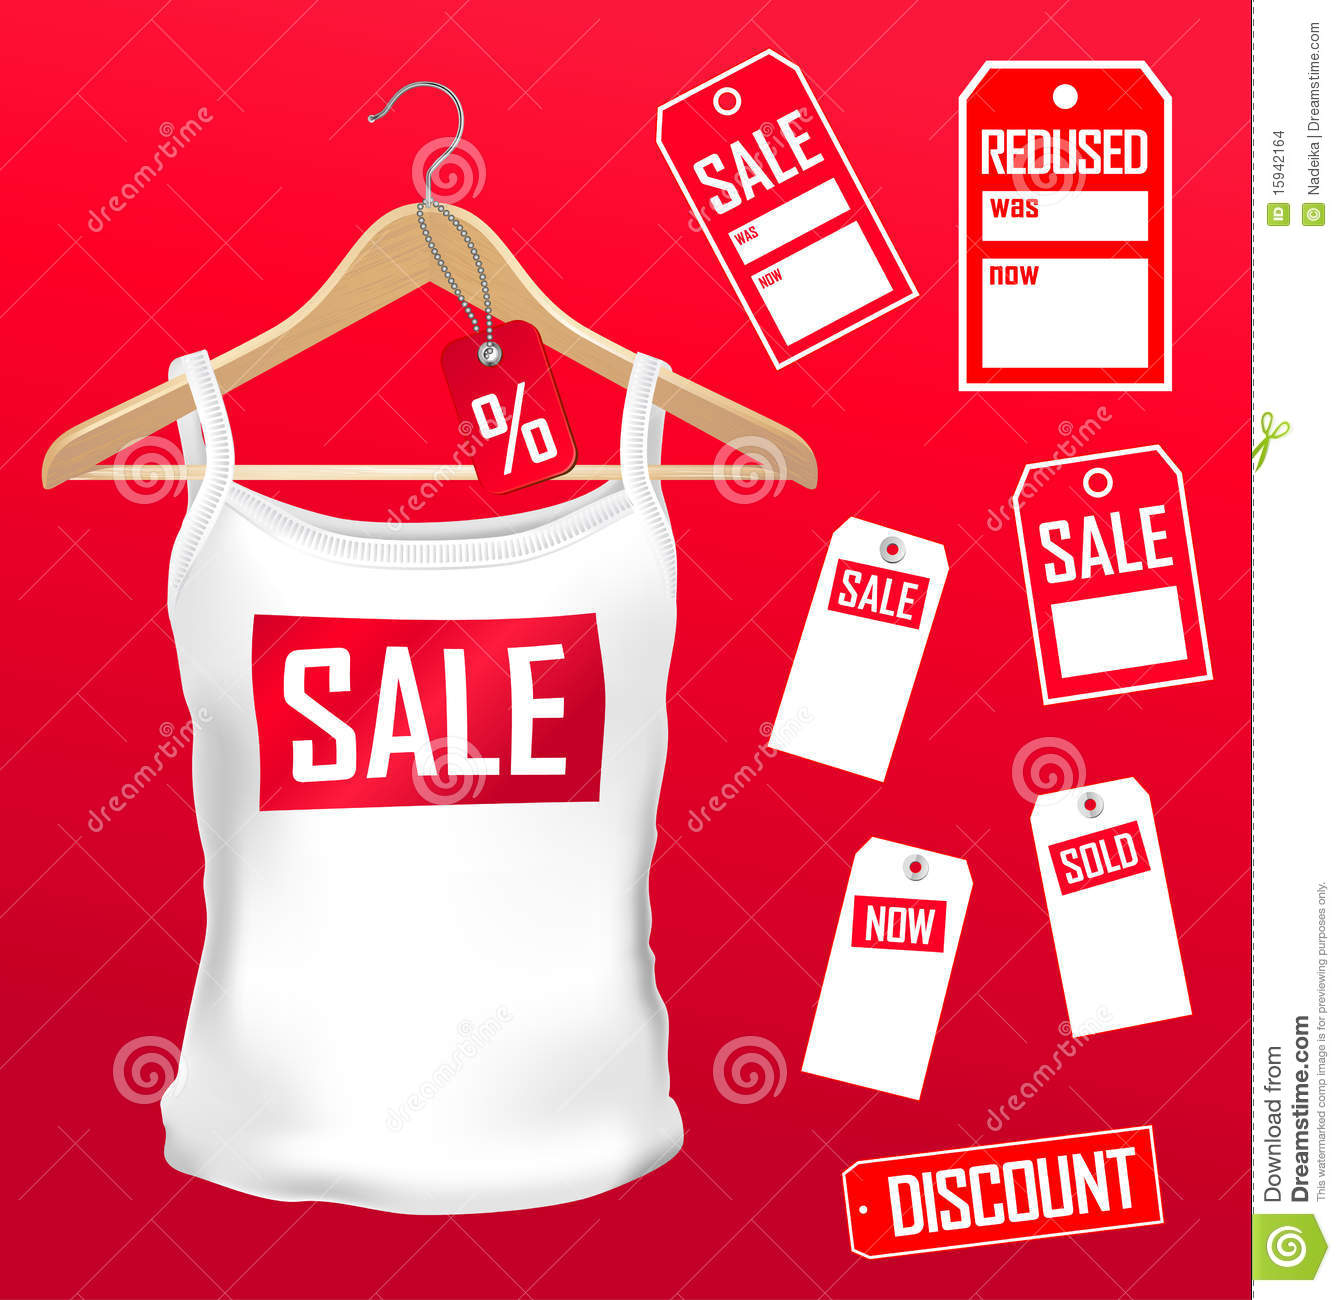 abfc46b940 Clothes labels sale set stock vector. Illustration of garments ...